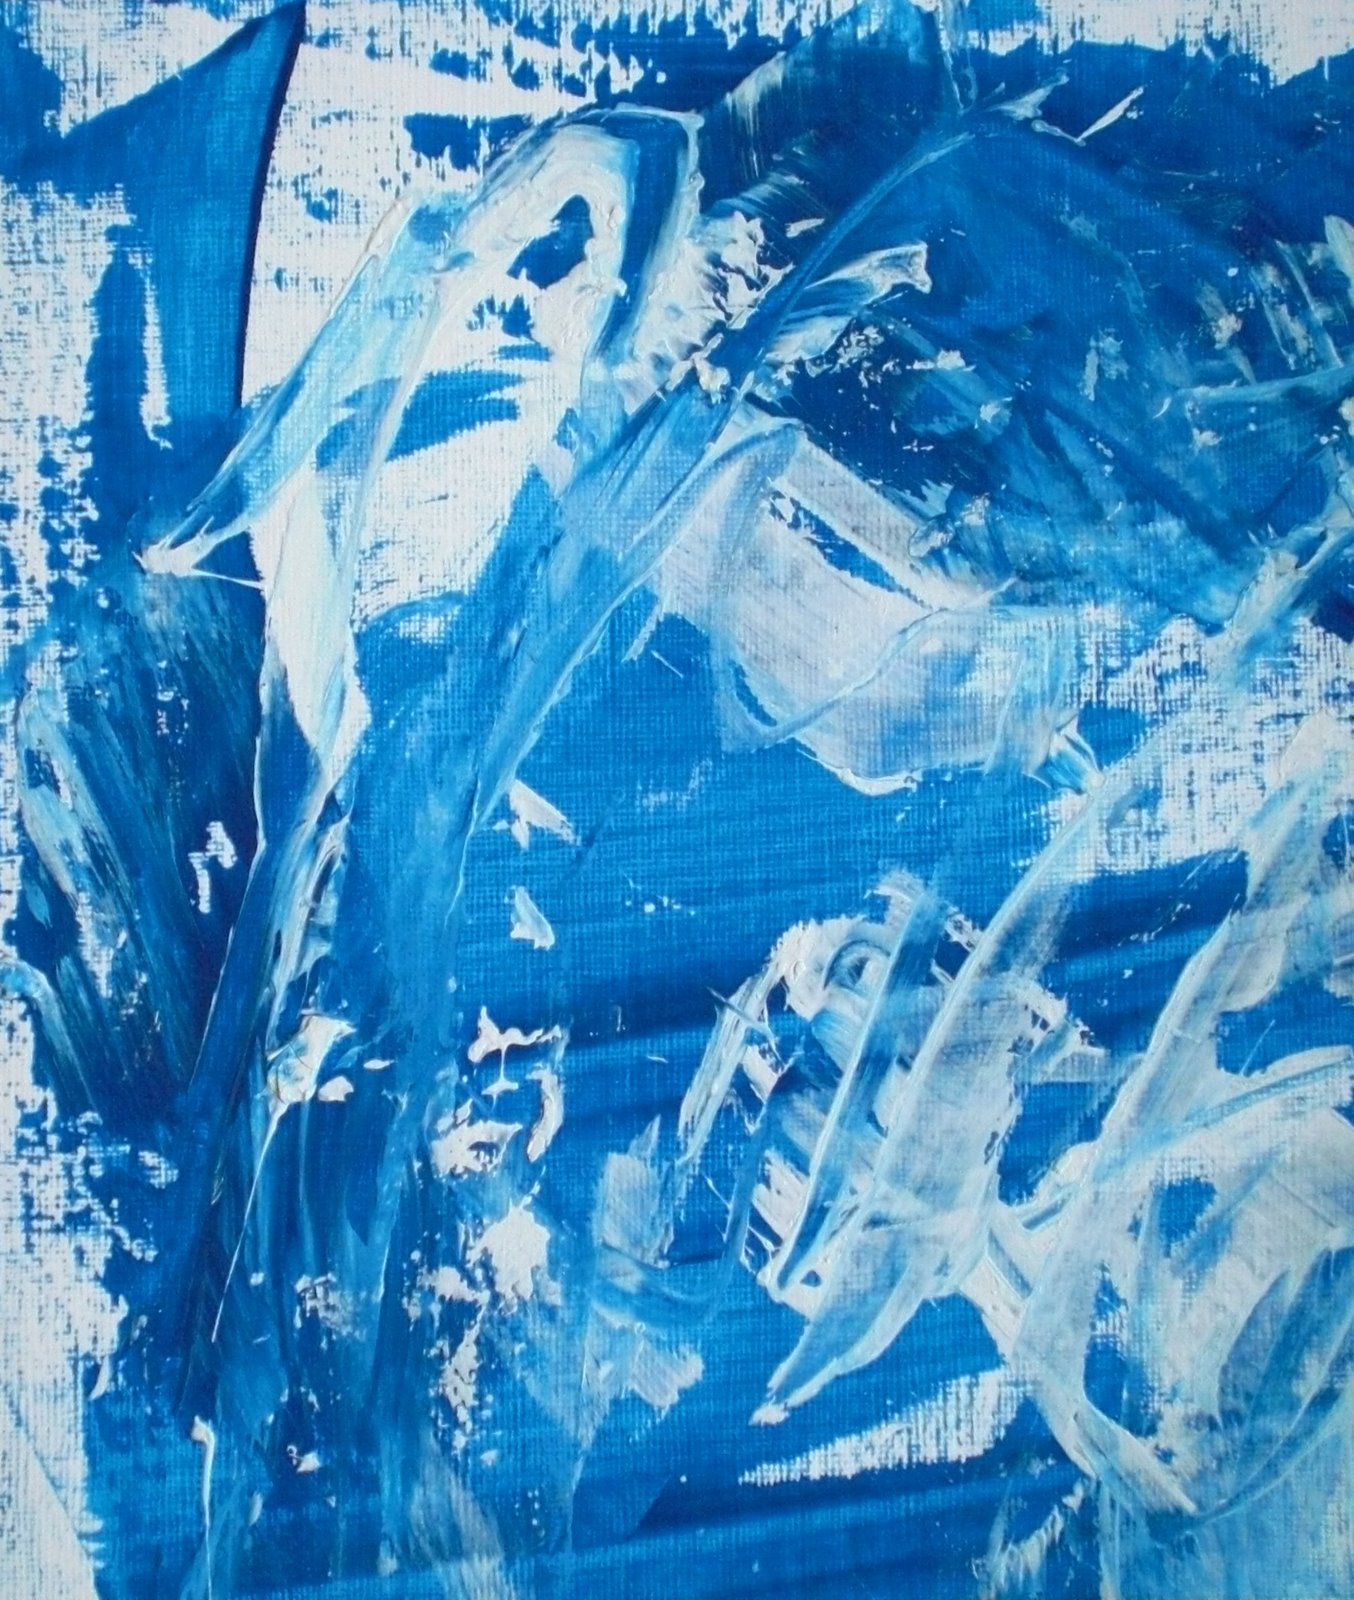 [Abstract+Fantasy+in+Blue+and+White+-+V++Energetic.JPG]